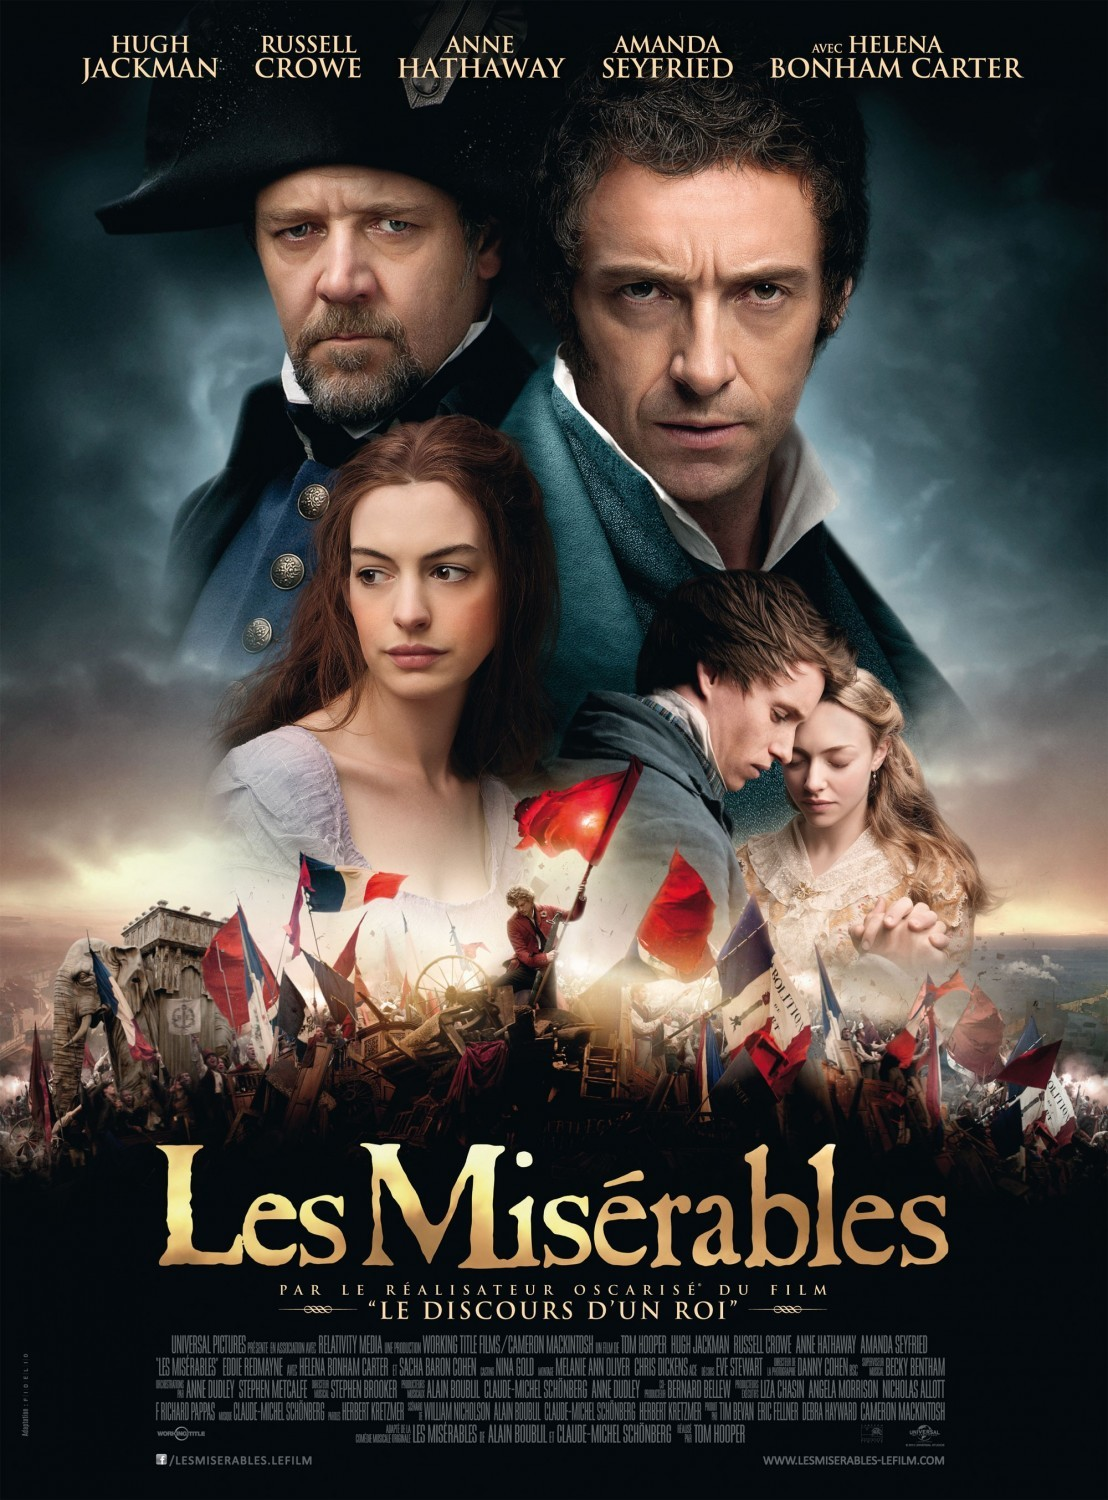 Les Miserables This was great! They brought you right into the story. The performances were great. I was kinda surprised by how much I liked Amanda Seyfried in this. Her particular trill in her singing voice worked well for this character. And then I got into Eponine, and this whole love triangle thing. Then everyone died pretty much, but it was a great ending.